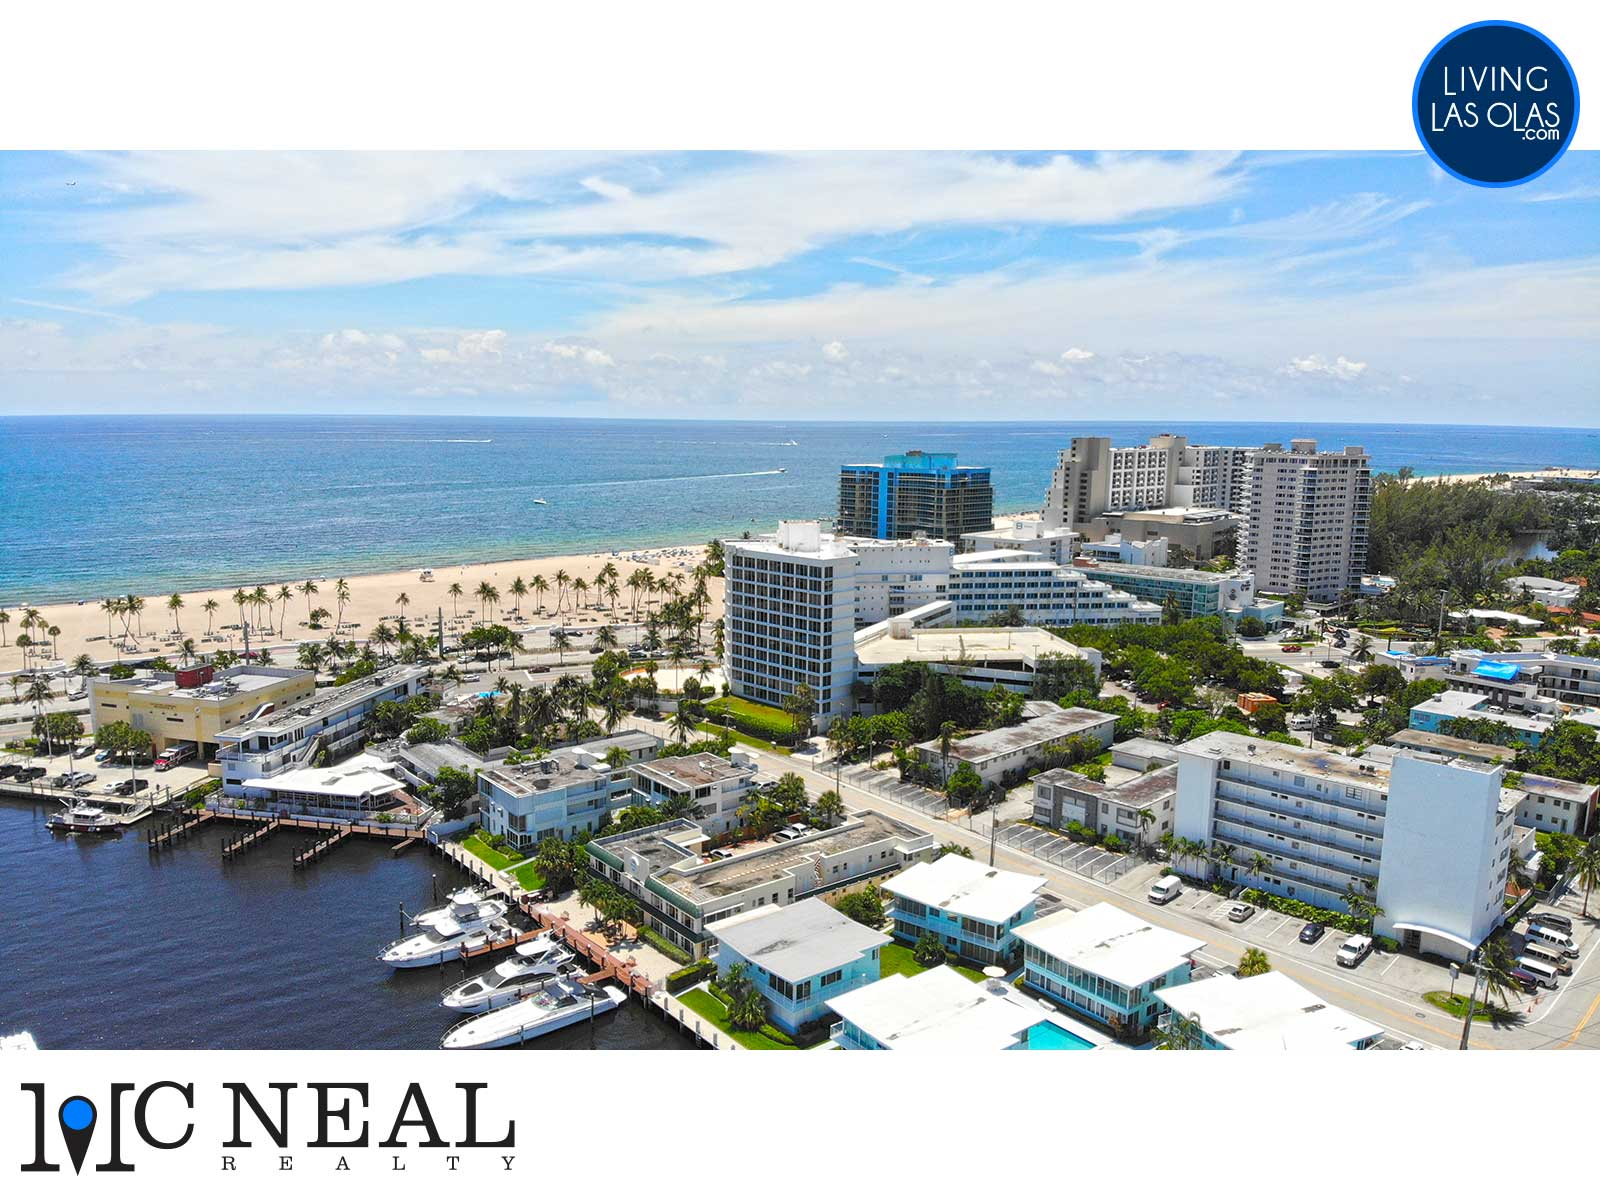 Fort Lauderdale Beach Homes Condos Real Estate 06